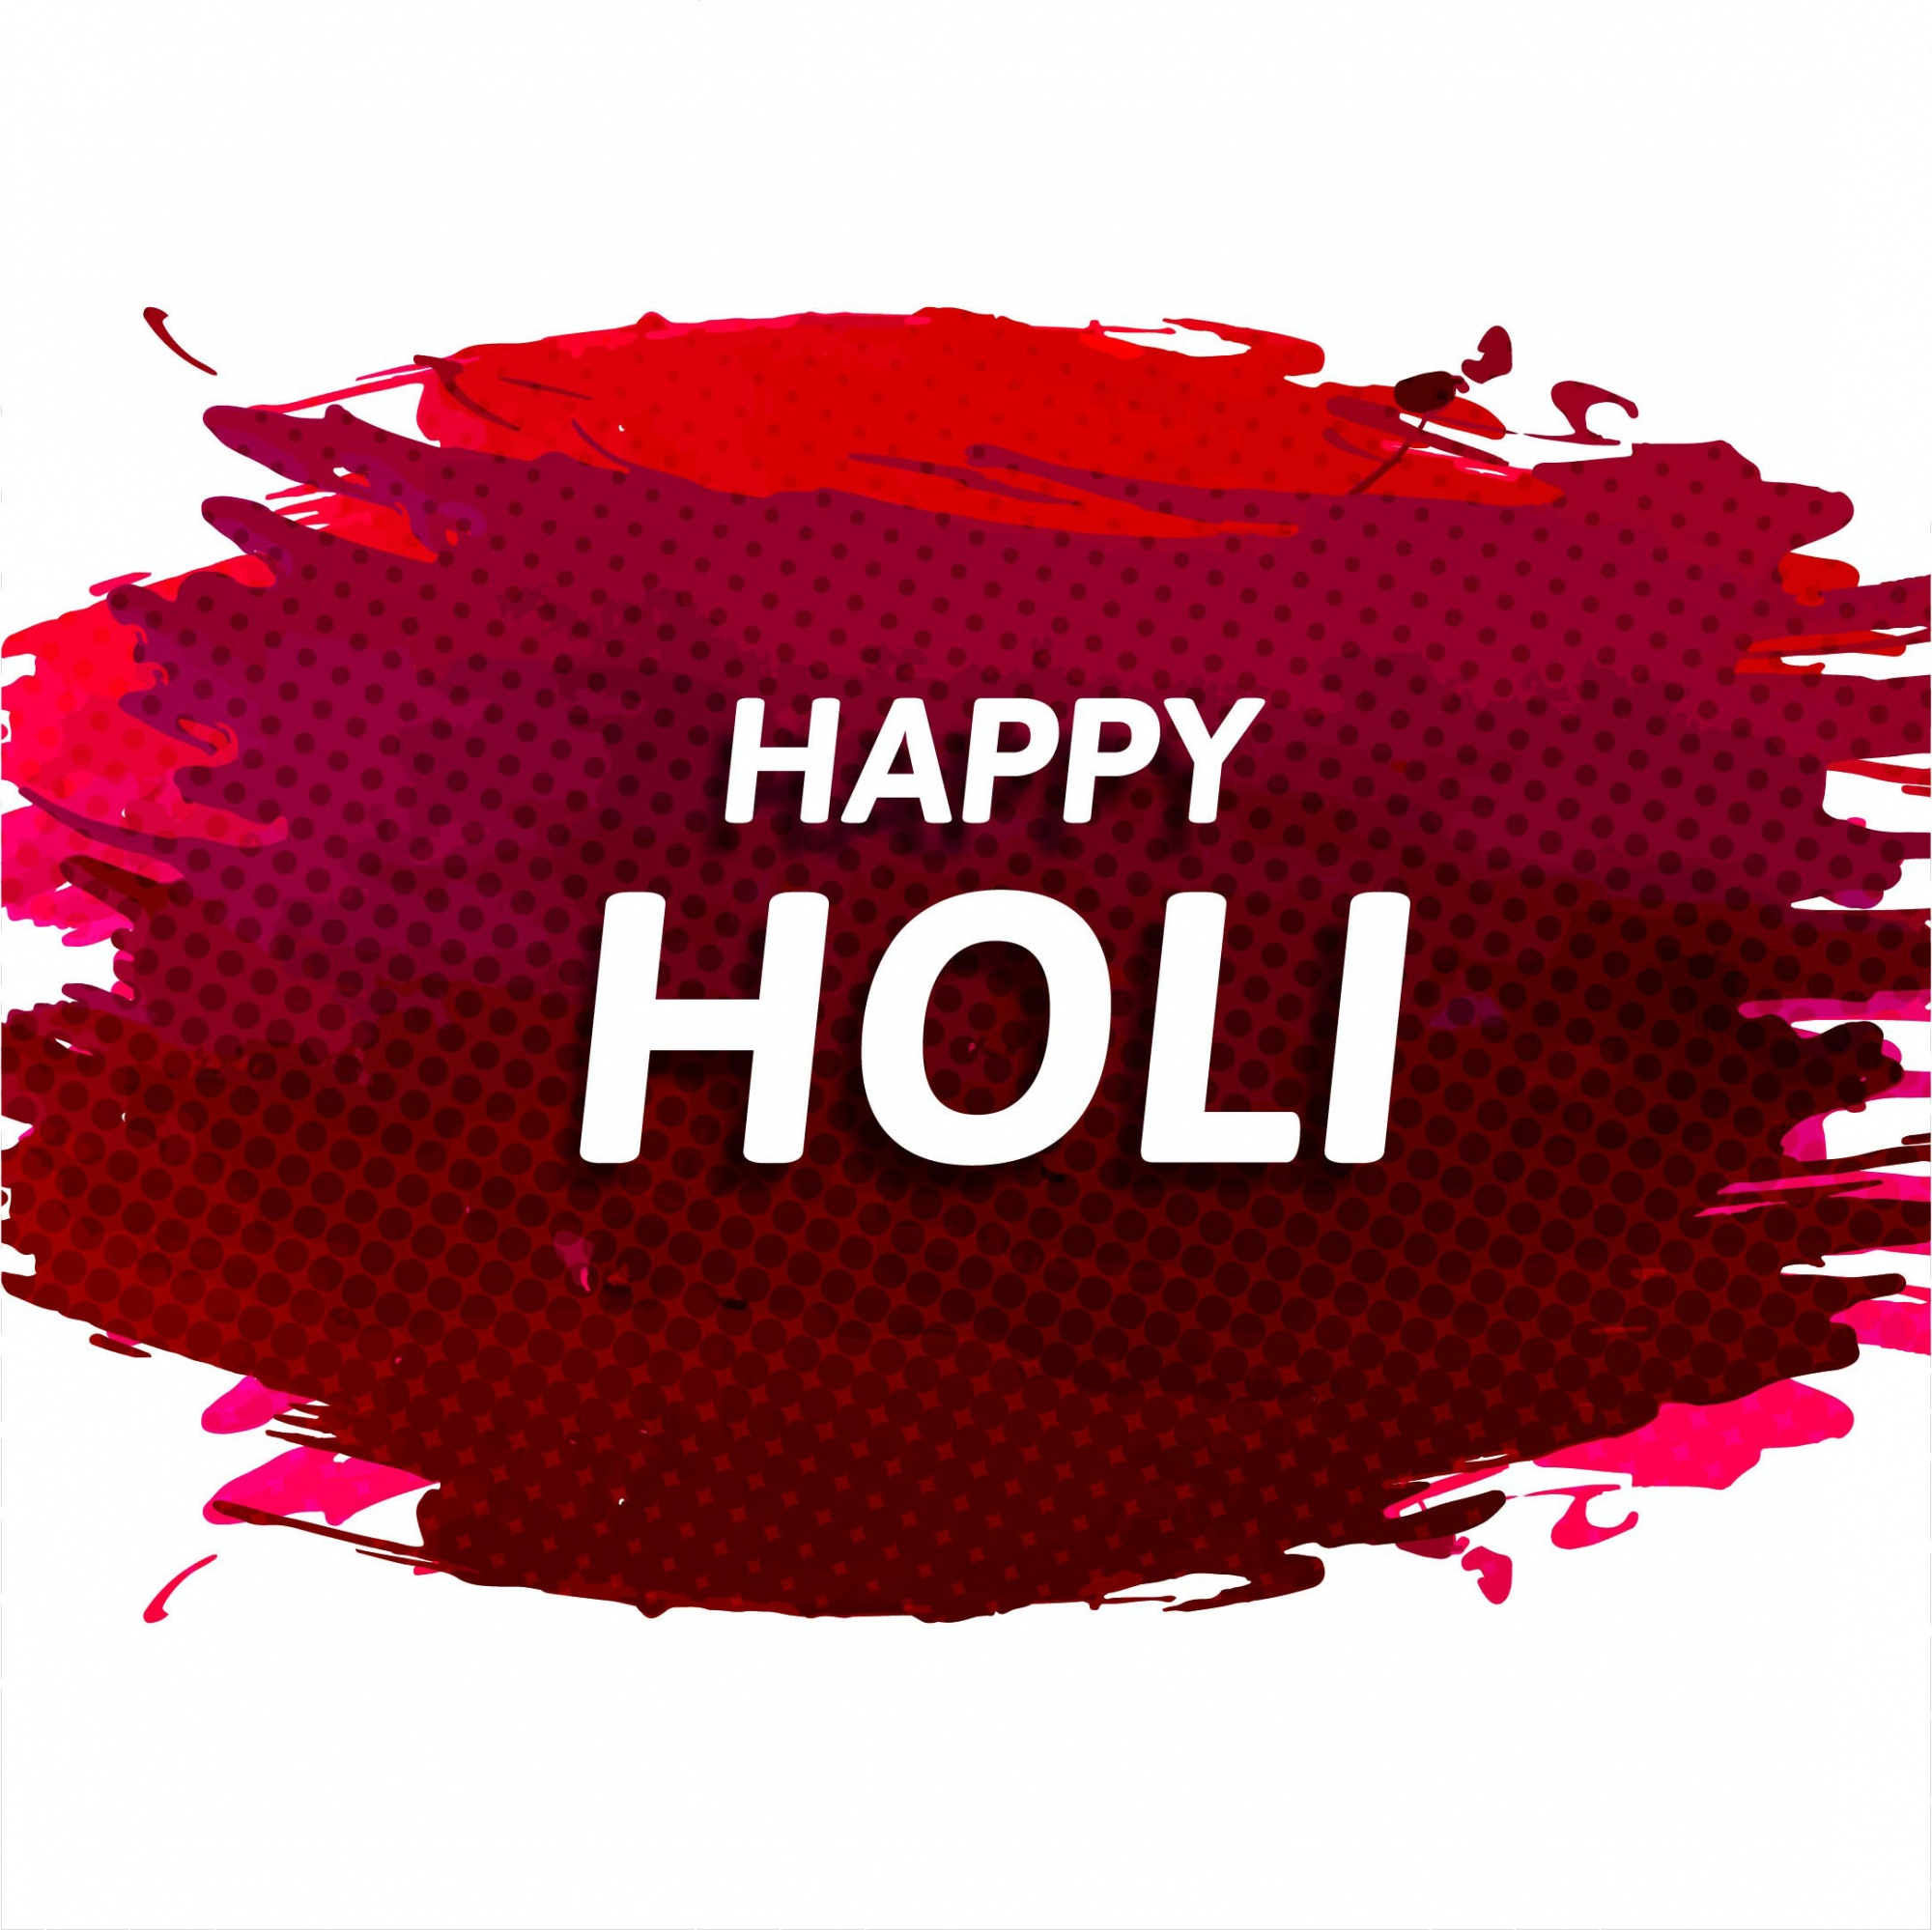 Background with red watercolor for holi festival